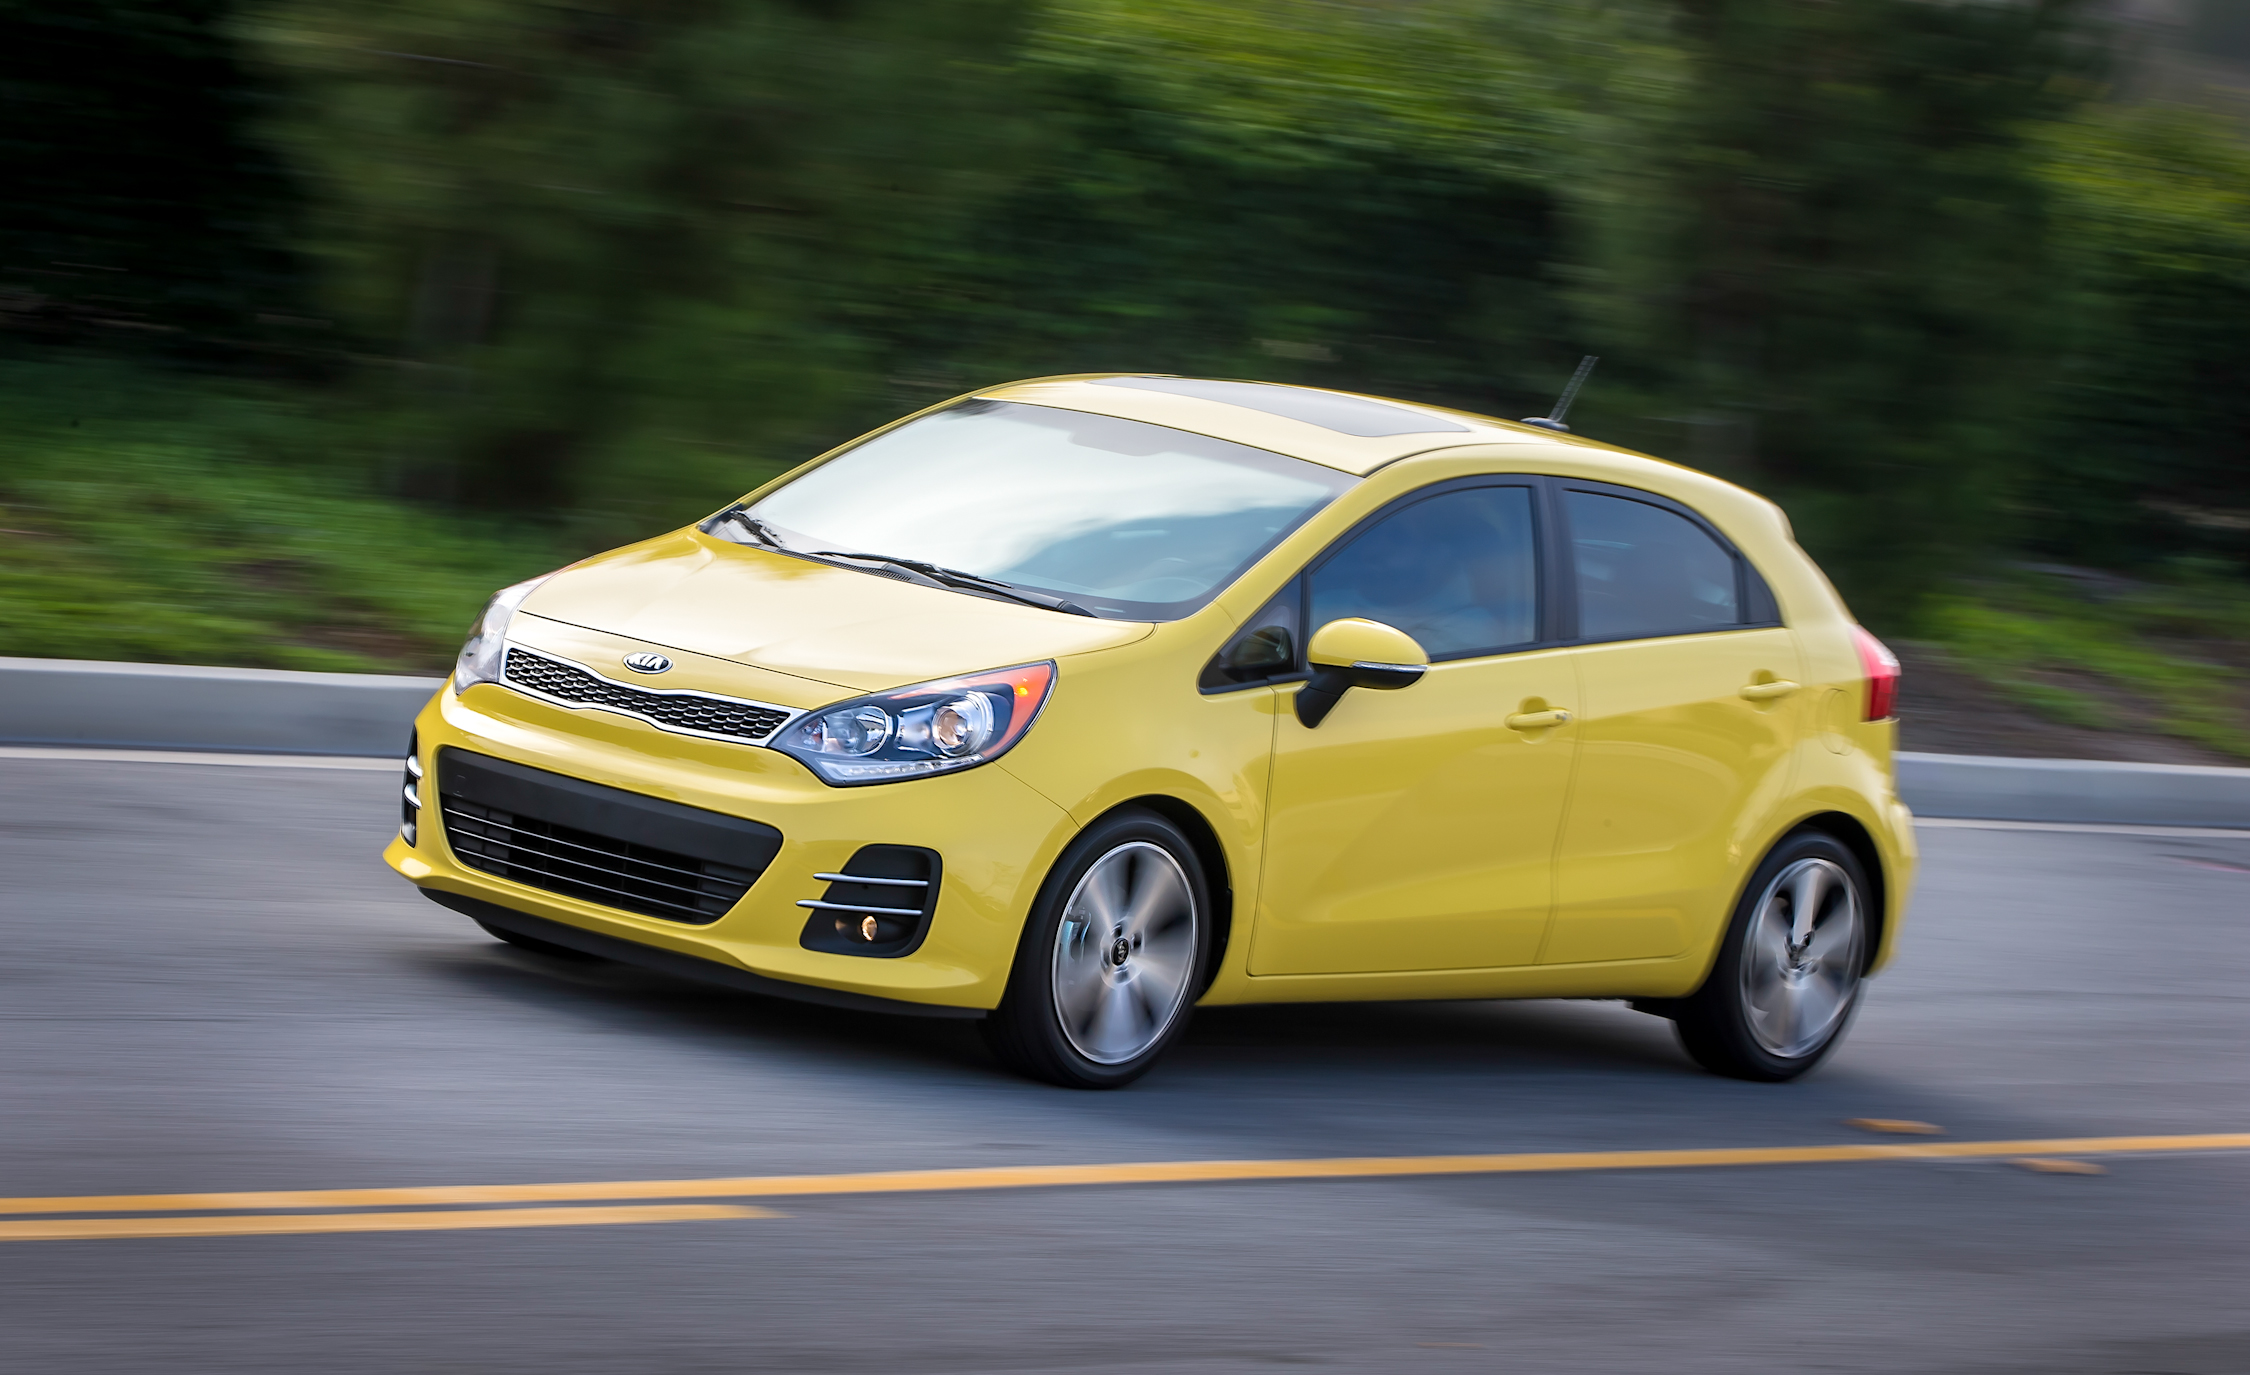 2016 Kia Rio 5 Door (View 7 of 19)